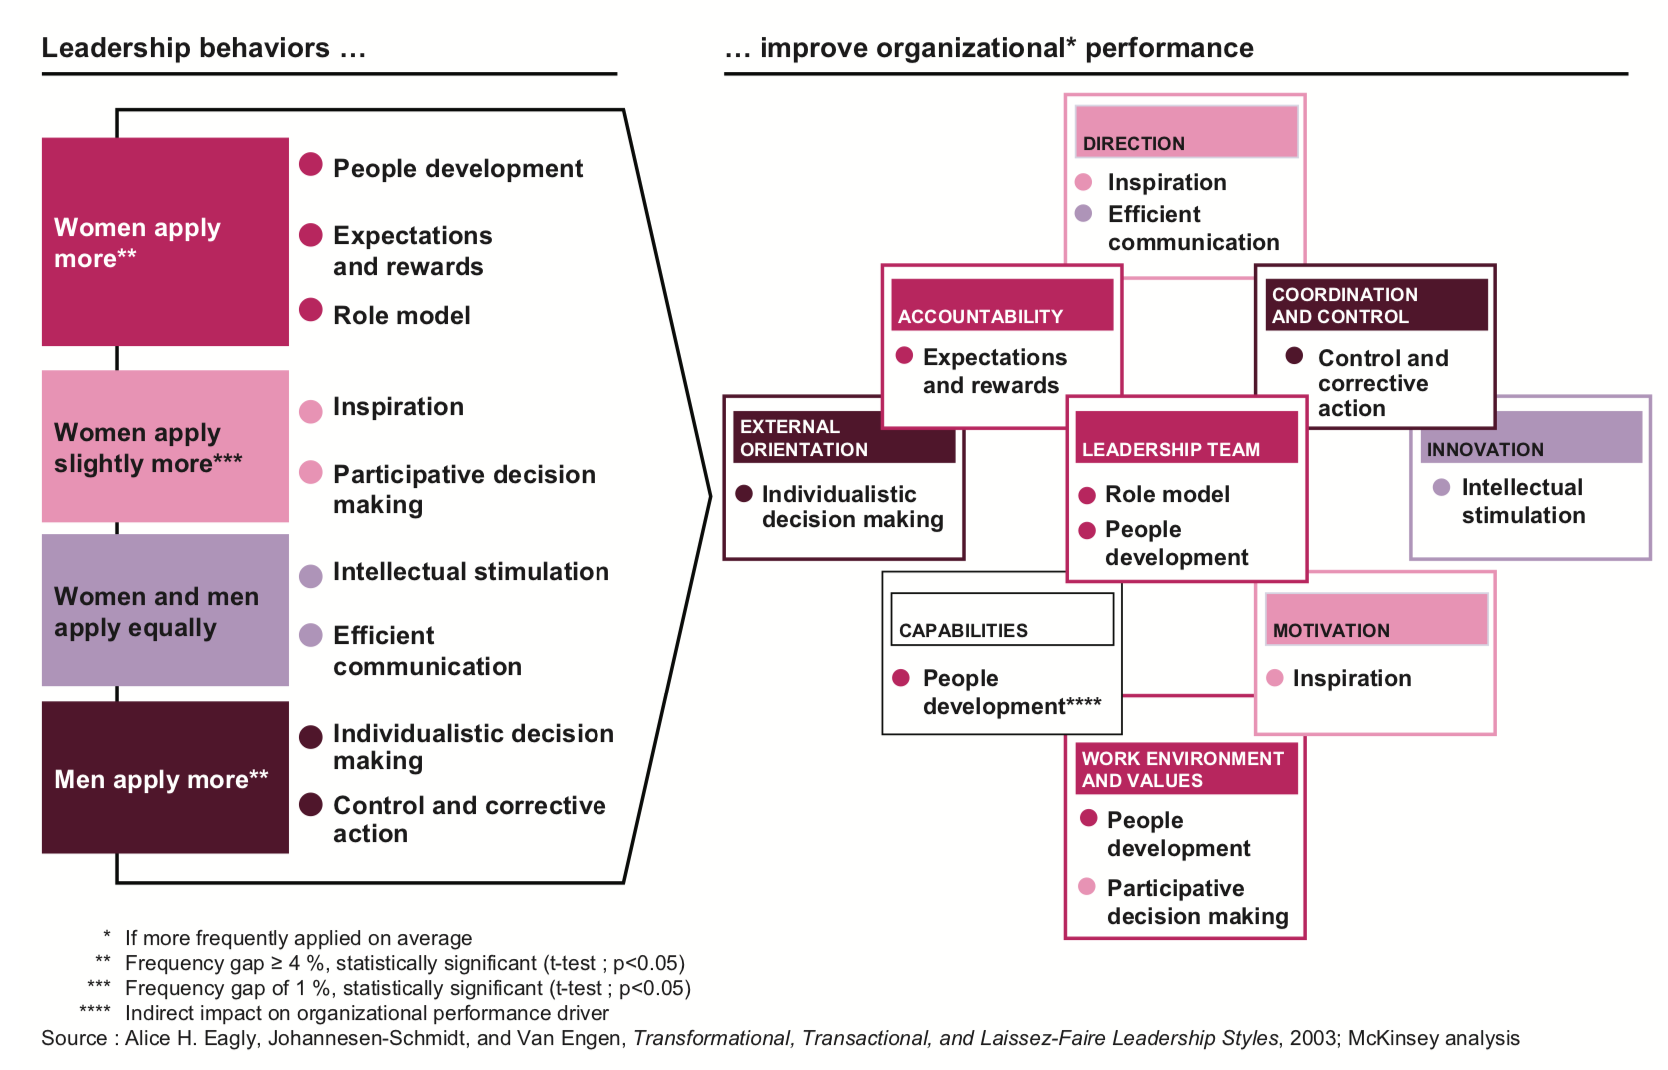 Women leadership behaviors matched with key organizational performance areas